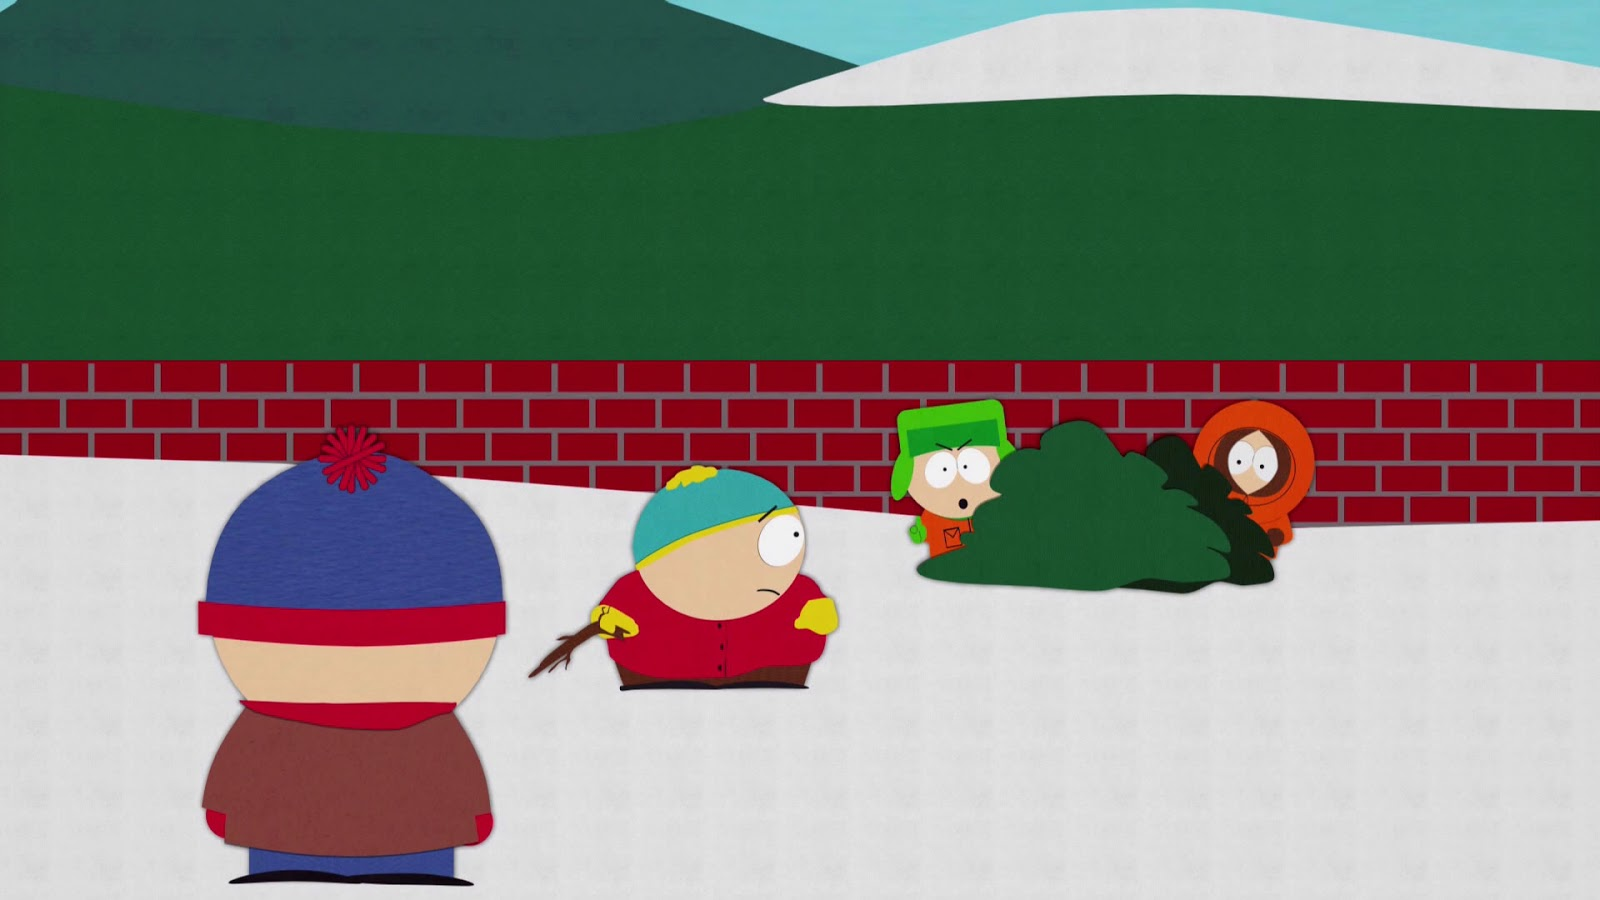 Ryans blog south park clubhouses hd screen captures south park clubhouses hd screen captures voltagebd Image collections